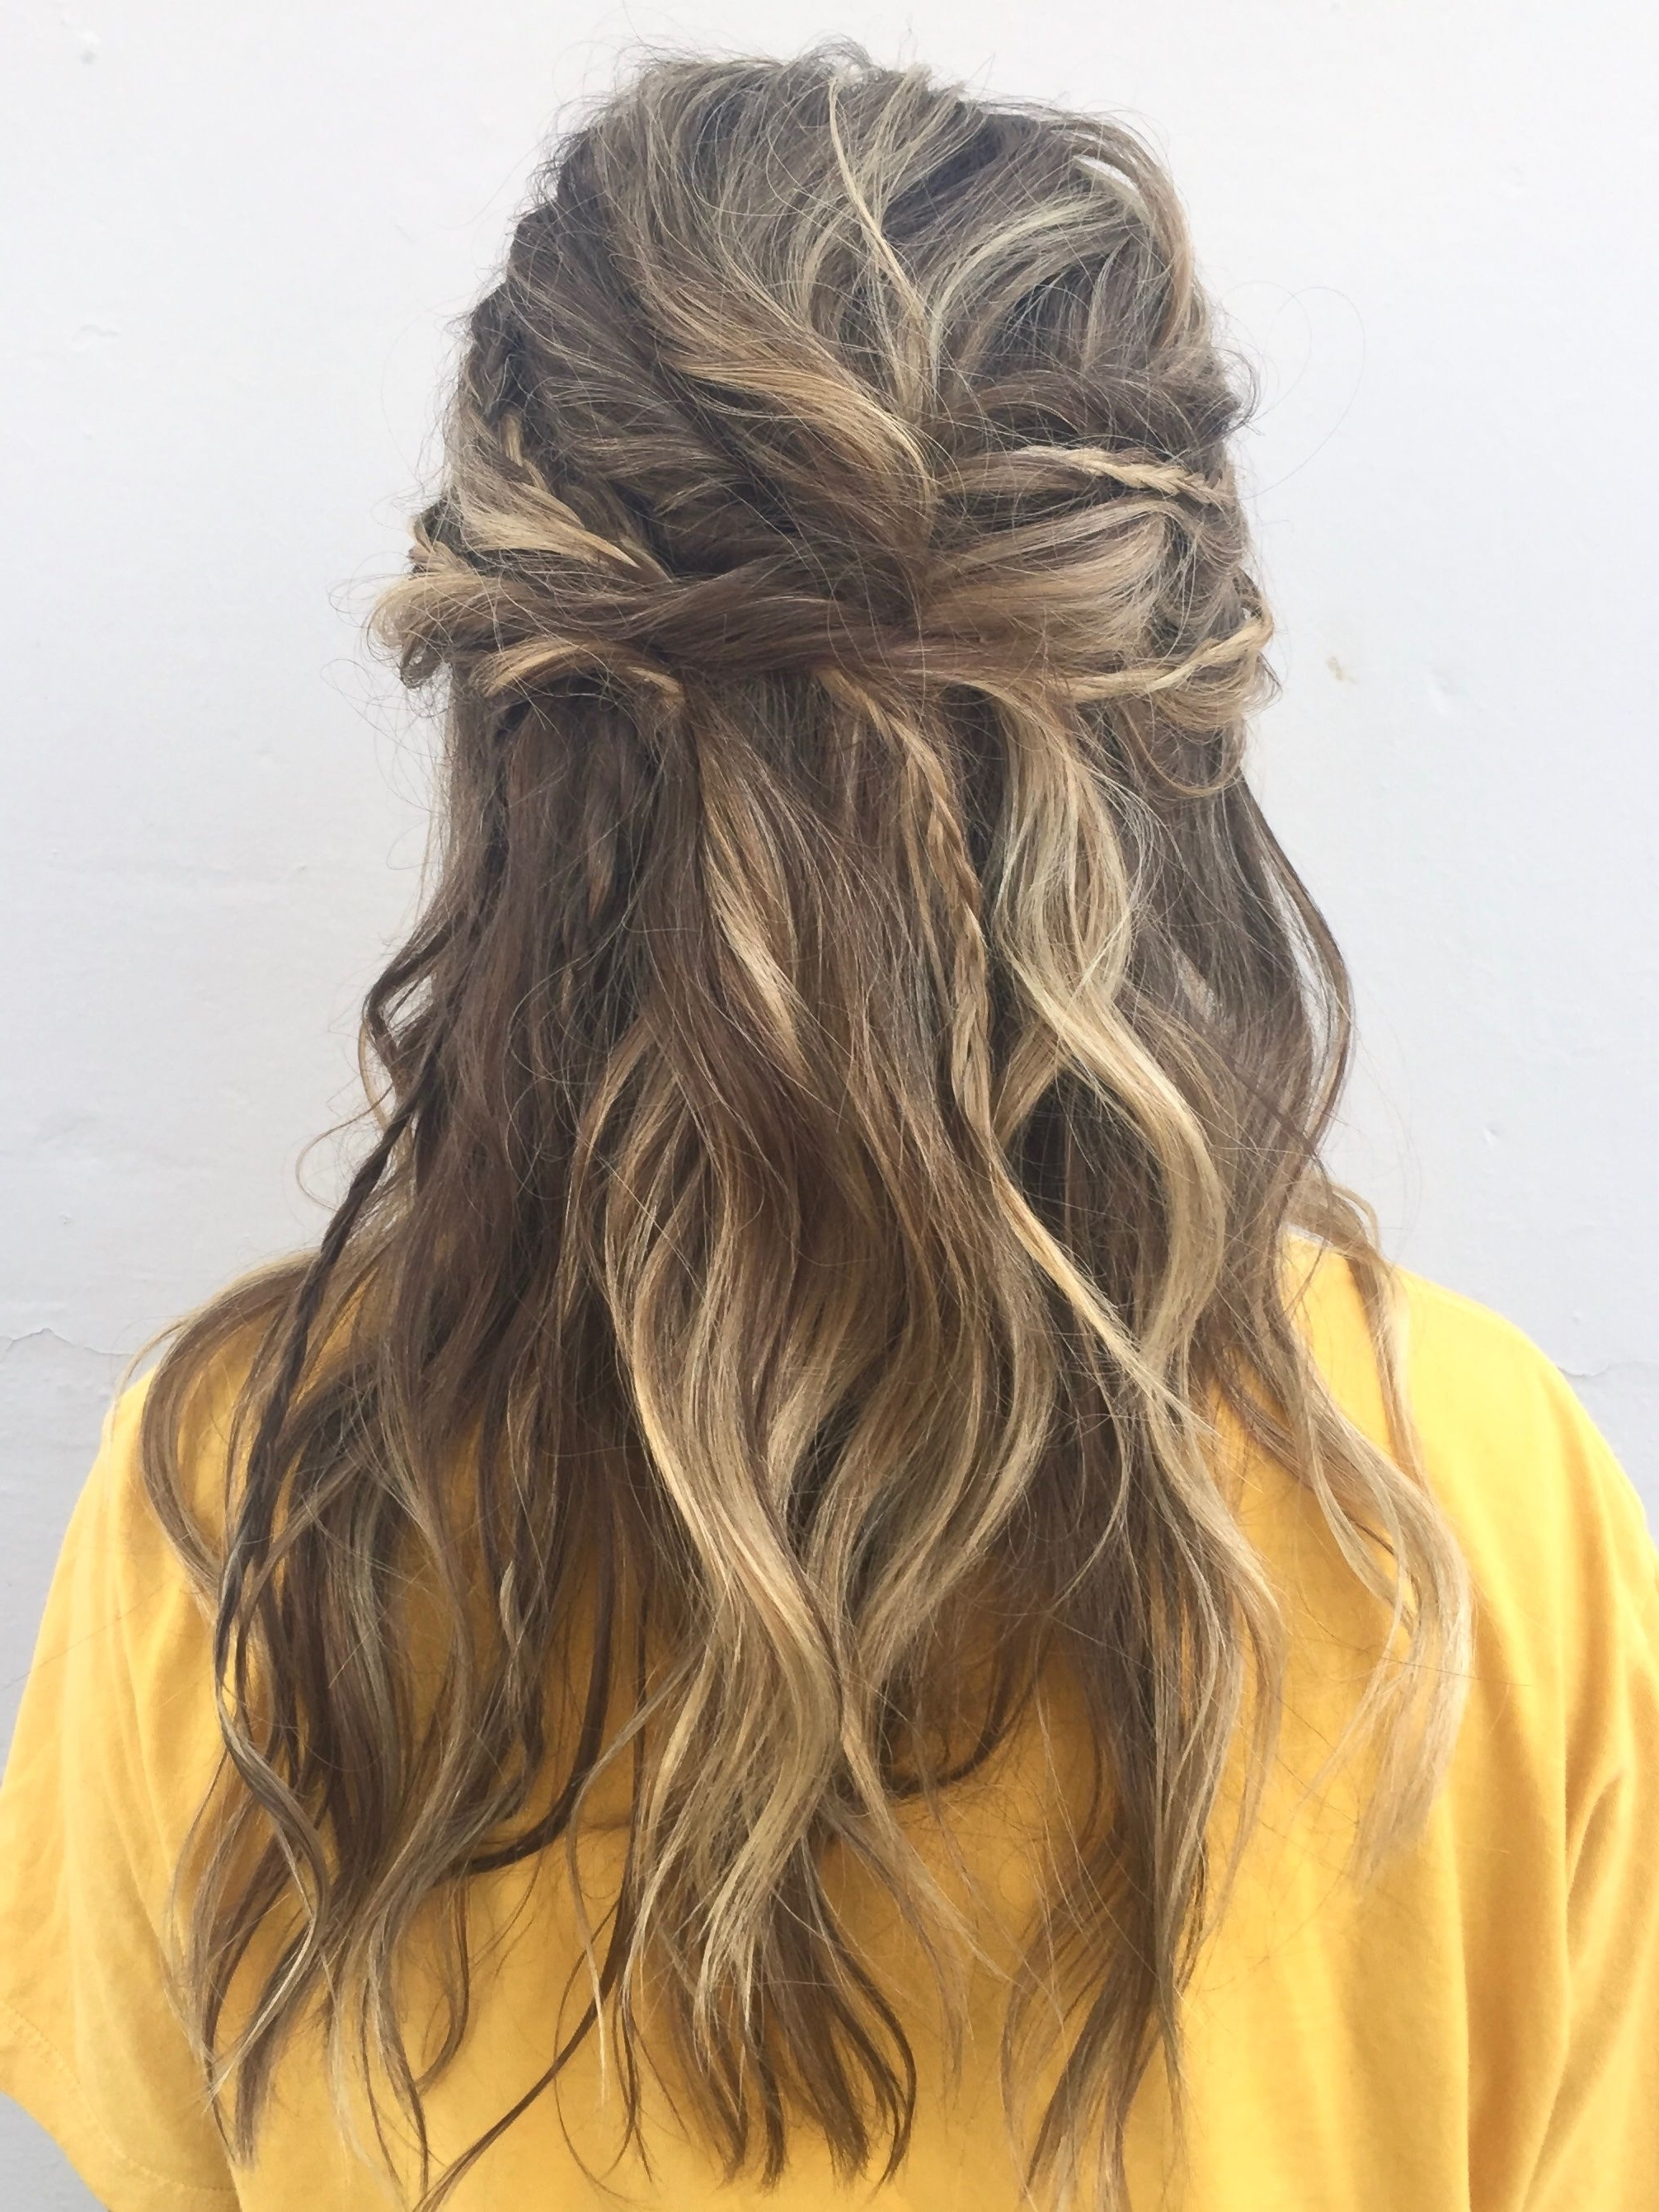 Popular Messy Half Ponytail Hairstyles For Boho Hair Prom Updo With Braids And Twists And Messy Waves Half Up (View 13 of 20)